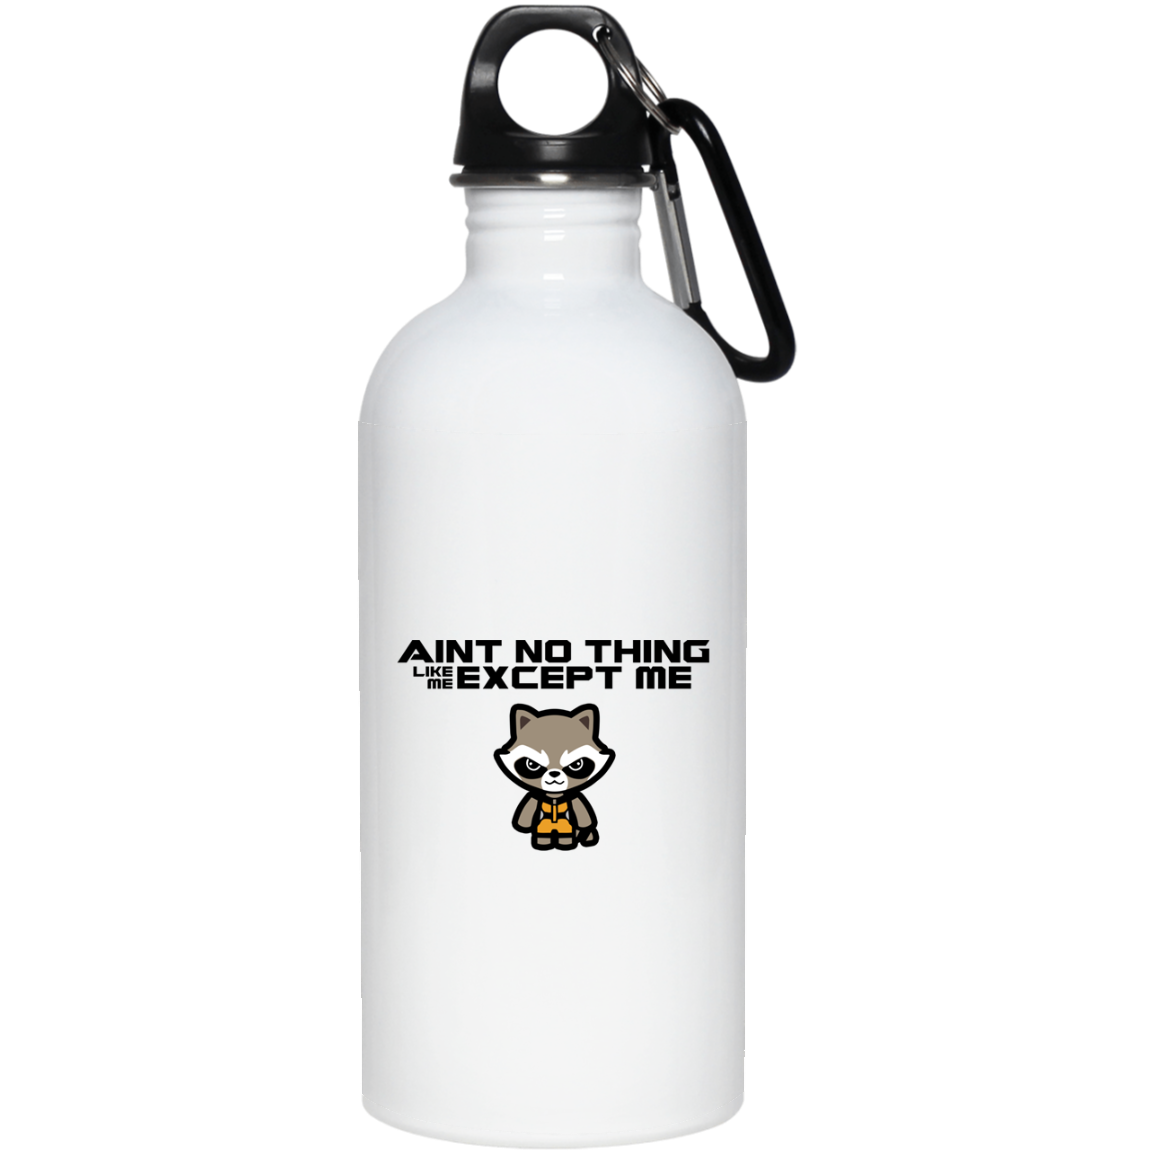 Aint No Thing Like Me Except Me - 20 oz. Stainless Steel Water Bottle